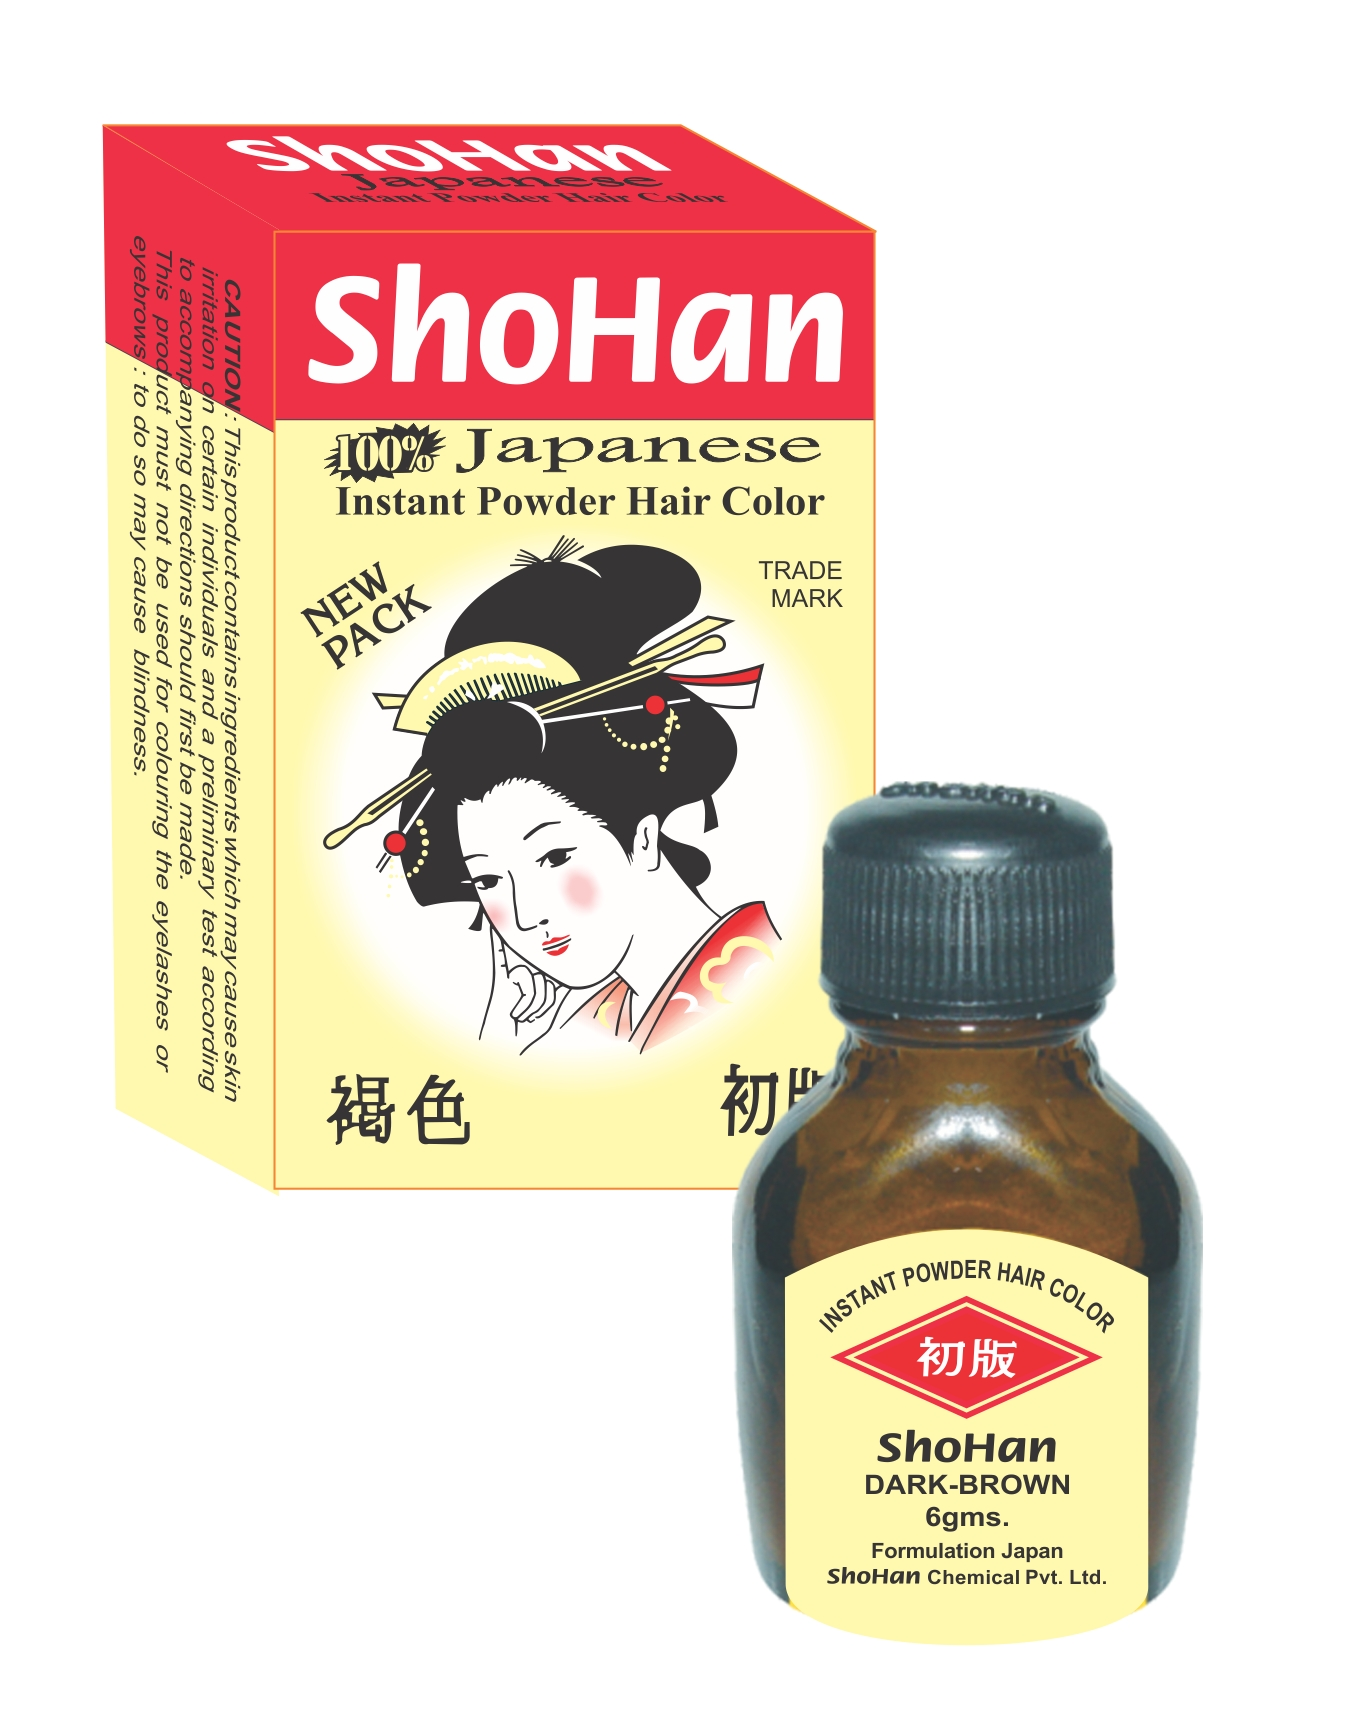 Japonesque Gentle Japanese Hair Dye Hair Color To Reduce Hair Loss